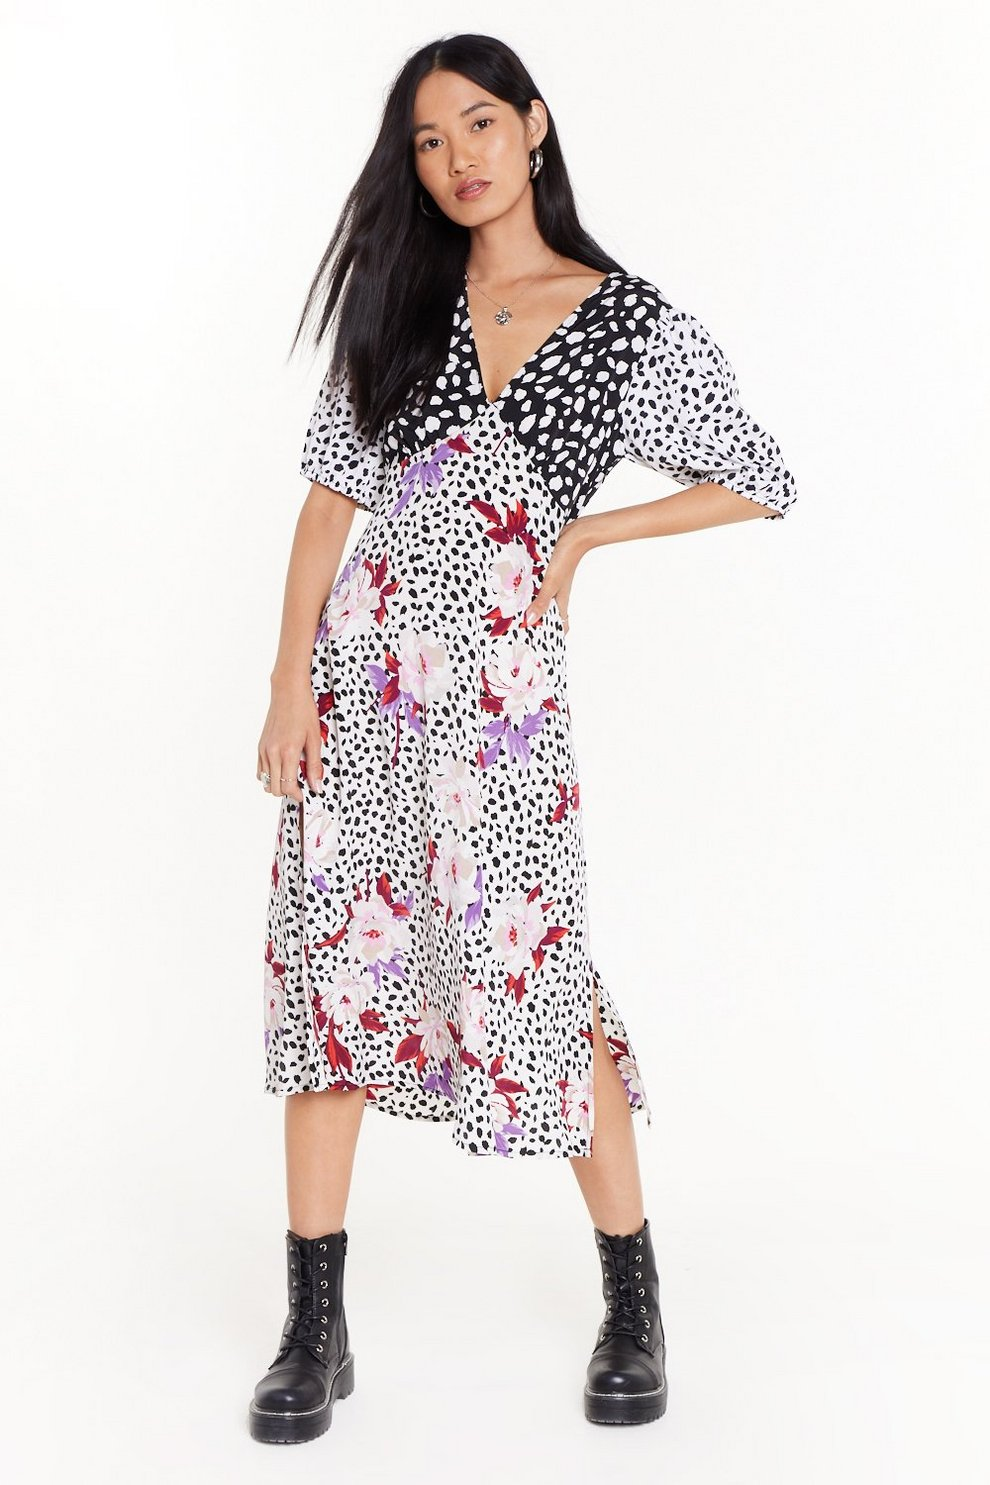 bda375cdcdf8a Dot Growlin' Anywhere Animal Midi Dress